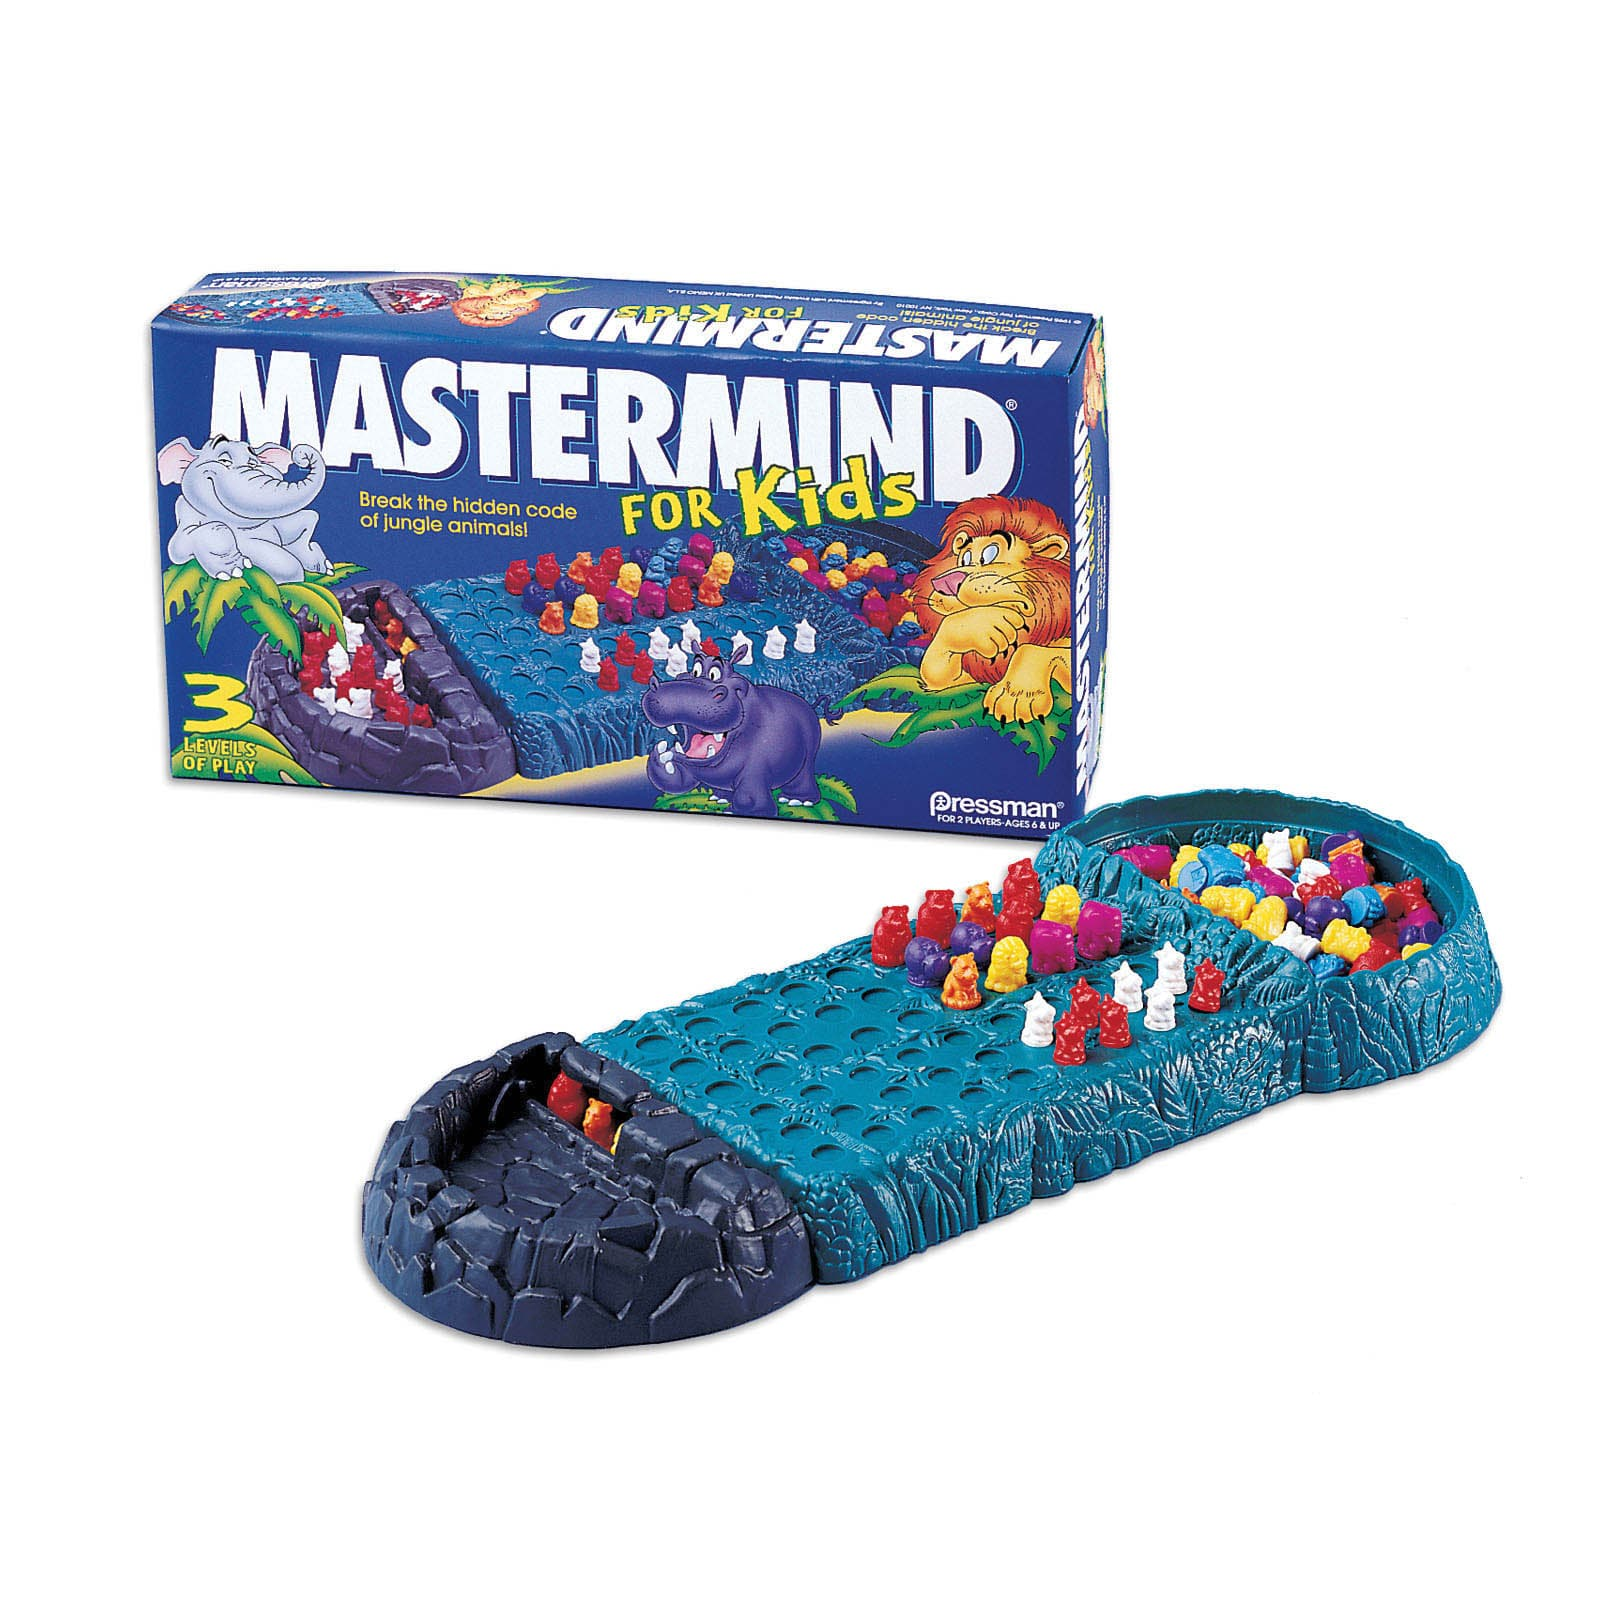 Pressman Toy Mastermind For Kids Board Game by Overstock